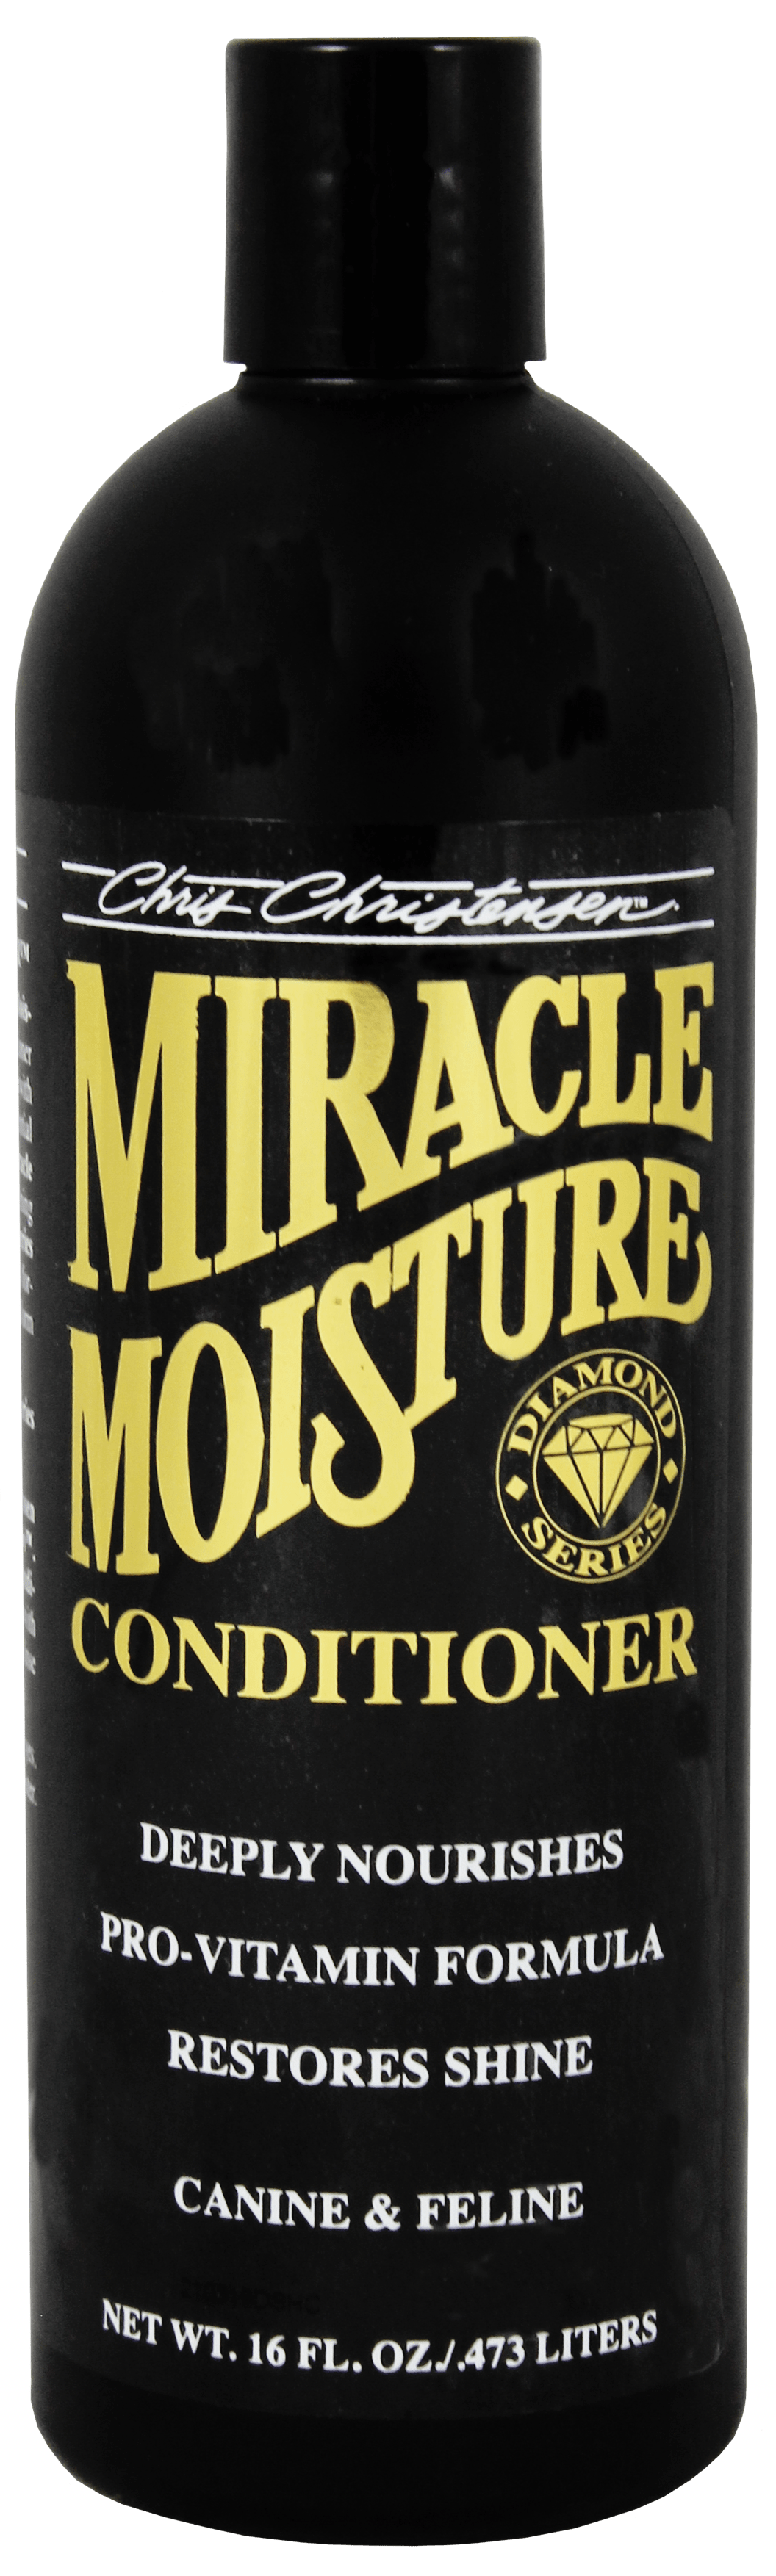 CC - Diamond Series Miracle Moisture Conditioner